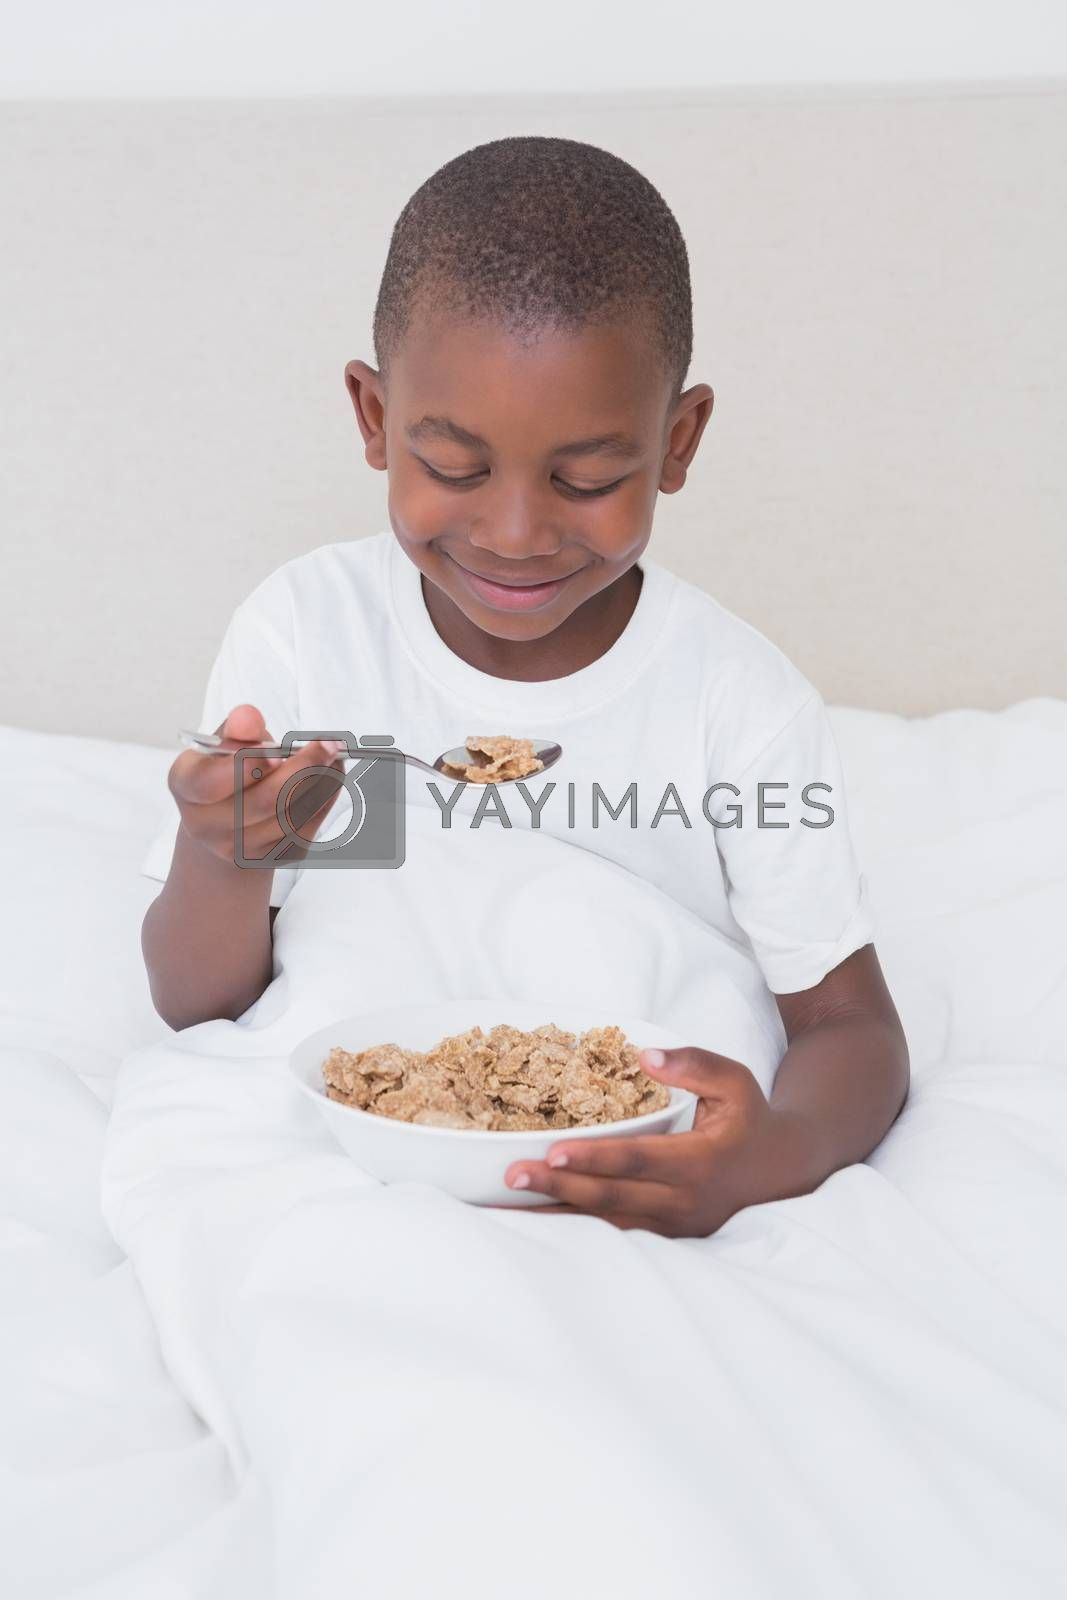 Royalty free image of Pretty little boy eating cereals in bed  by Wavebreakmedia